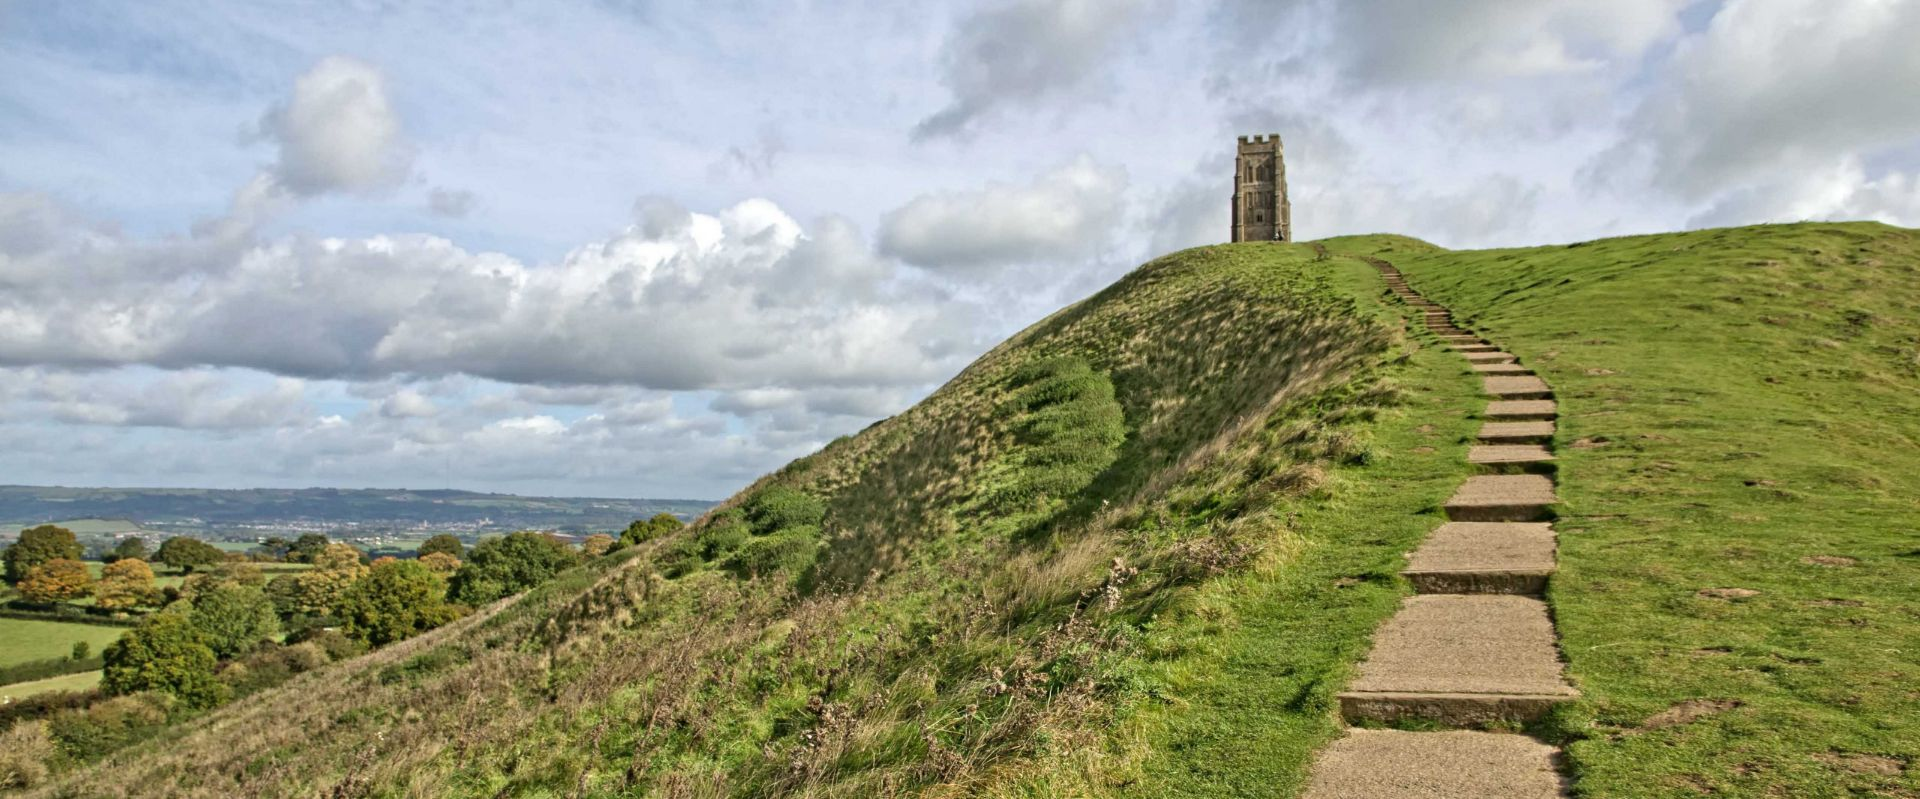 The footpath leading to the top of Glastonbury Tor